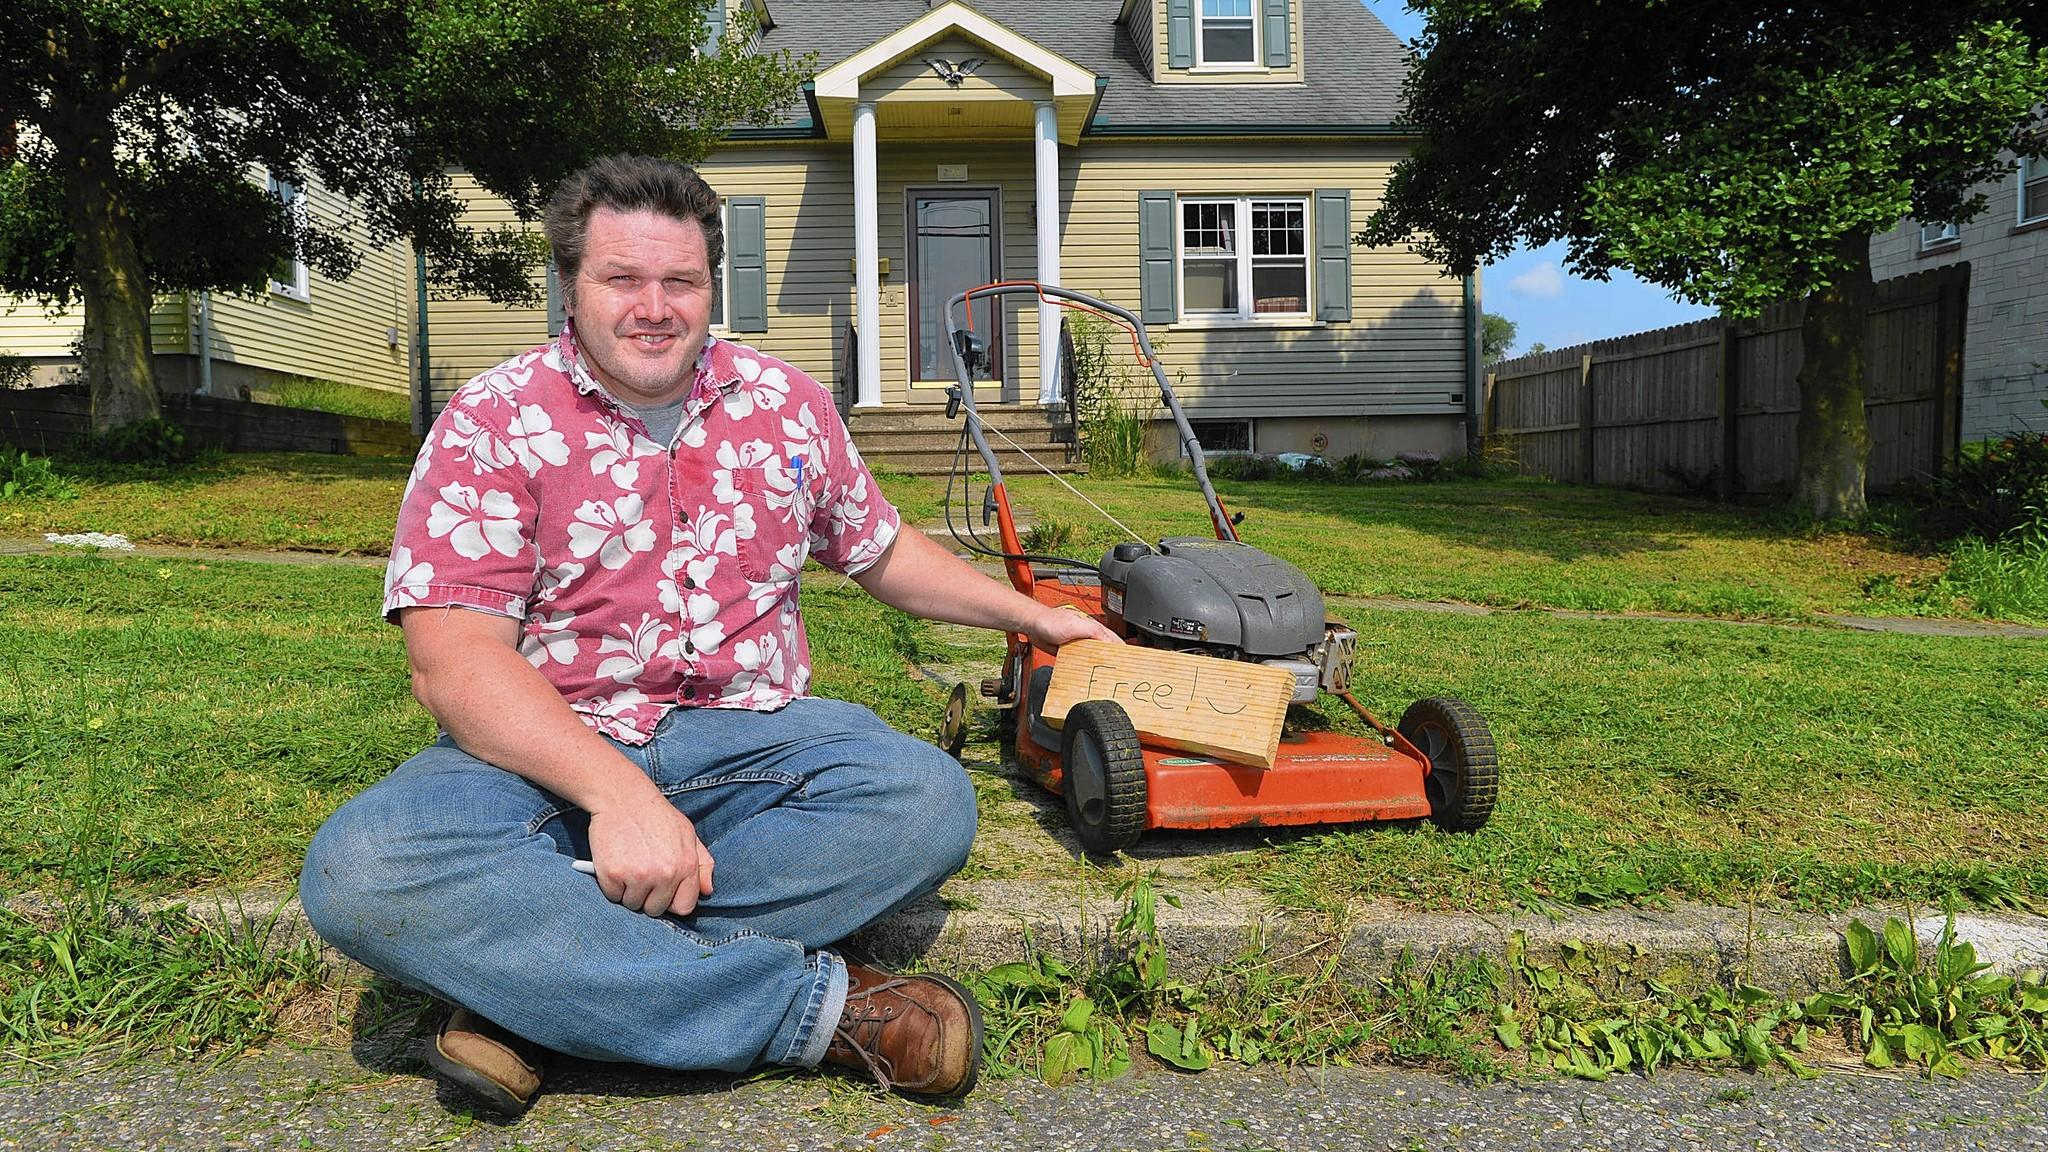 What is a cheap lawnmower?